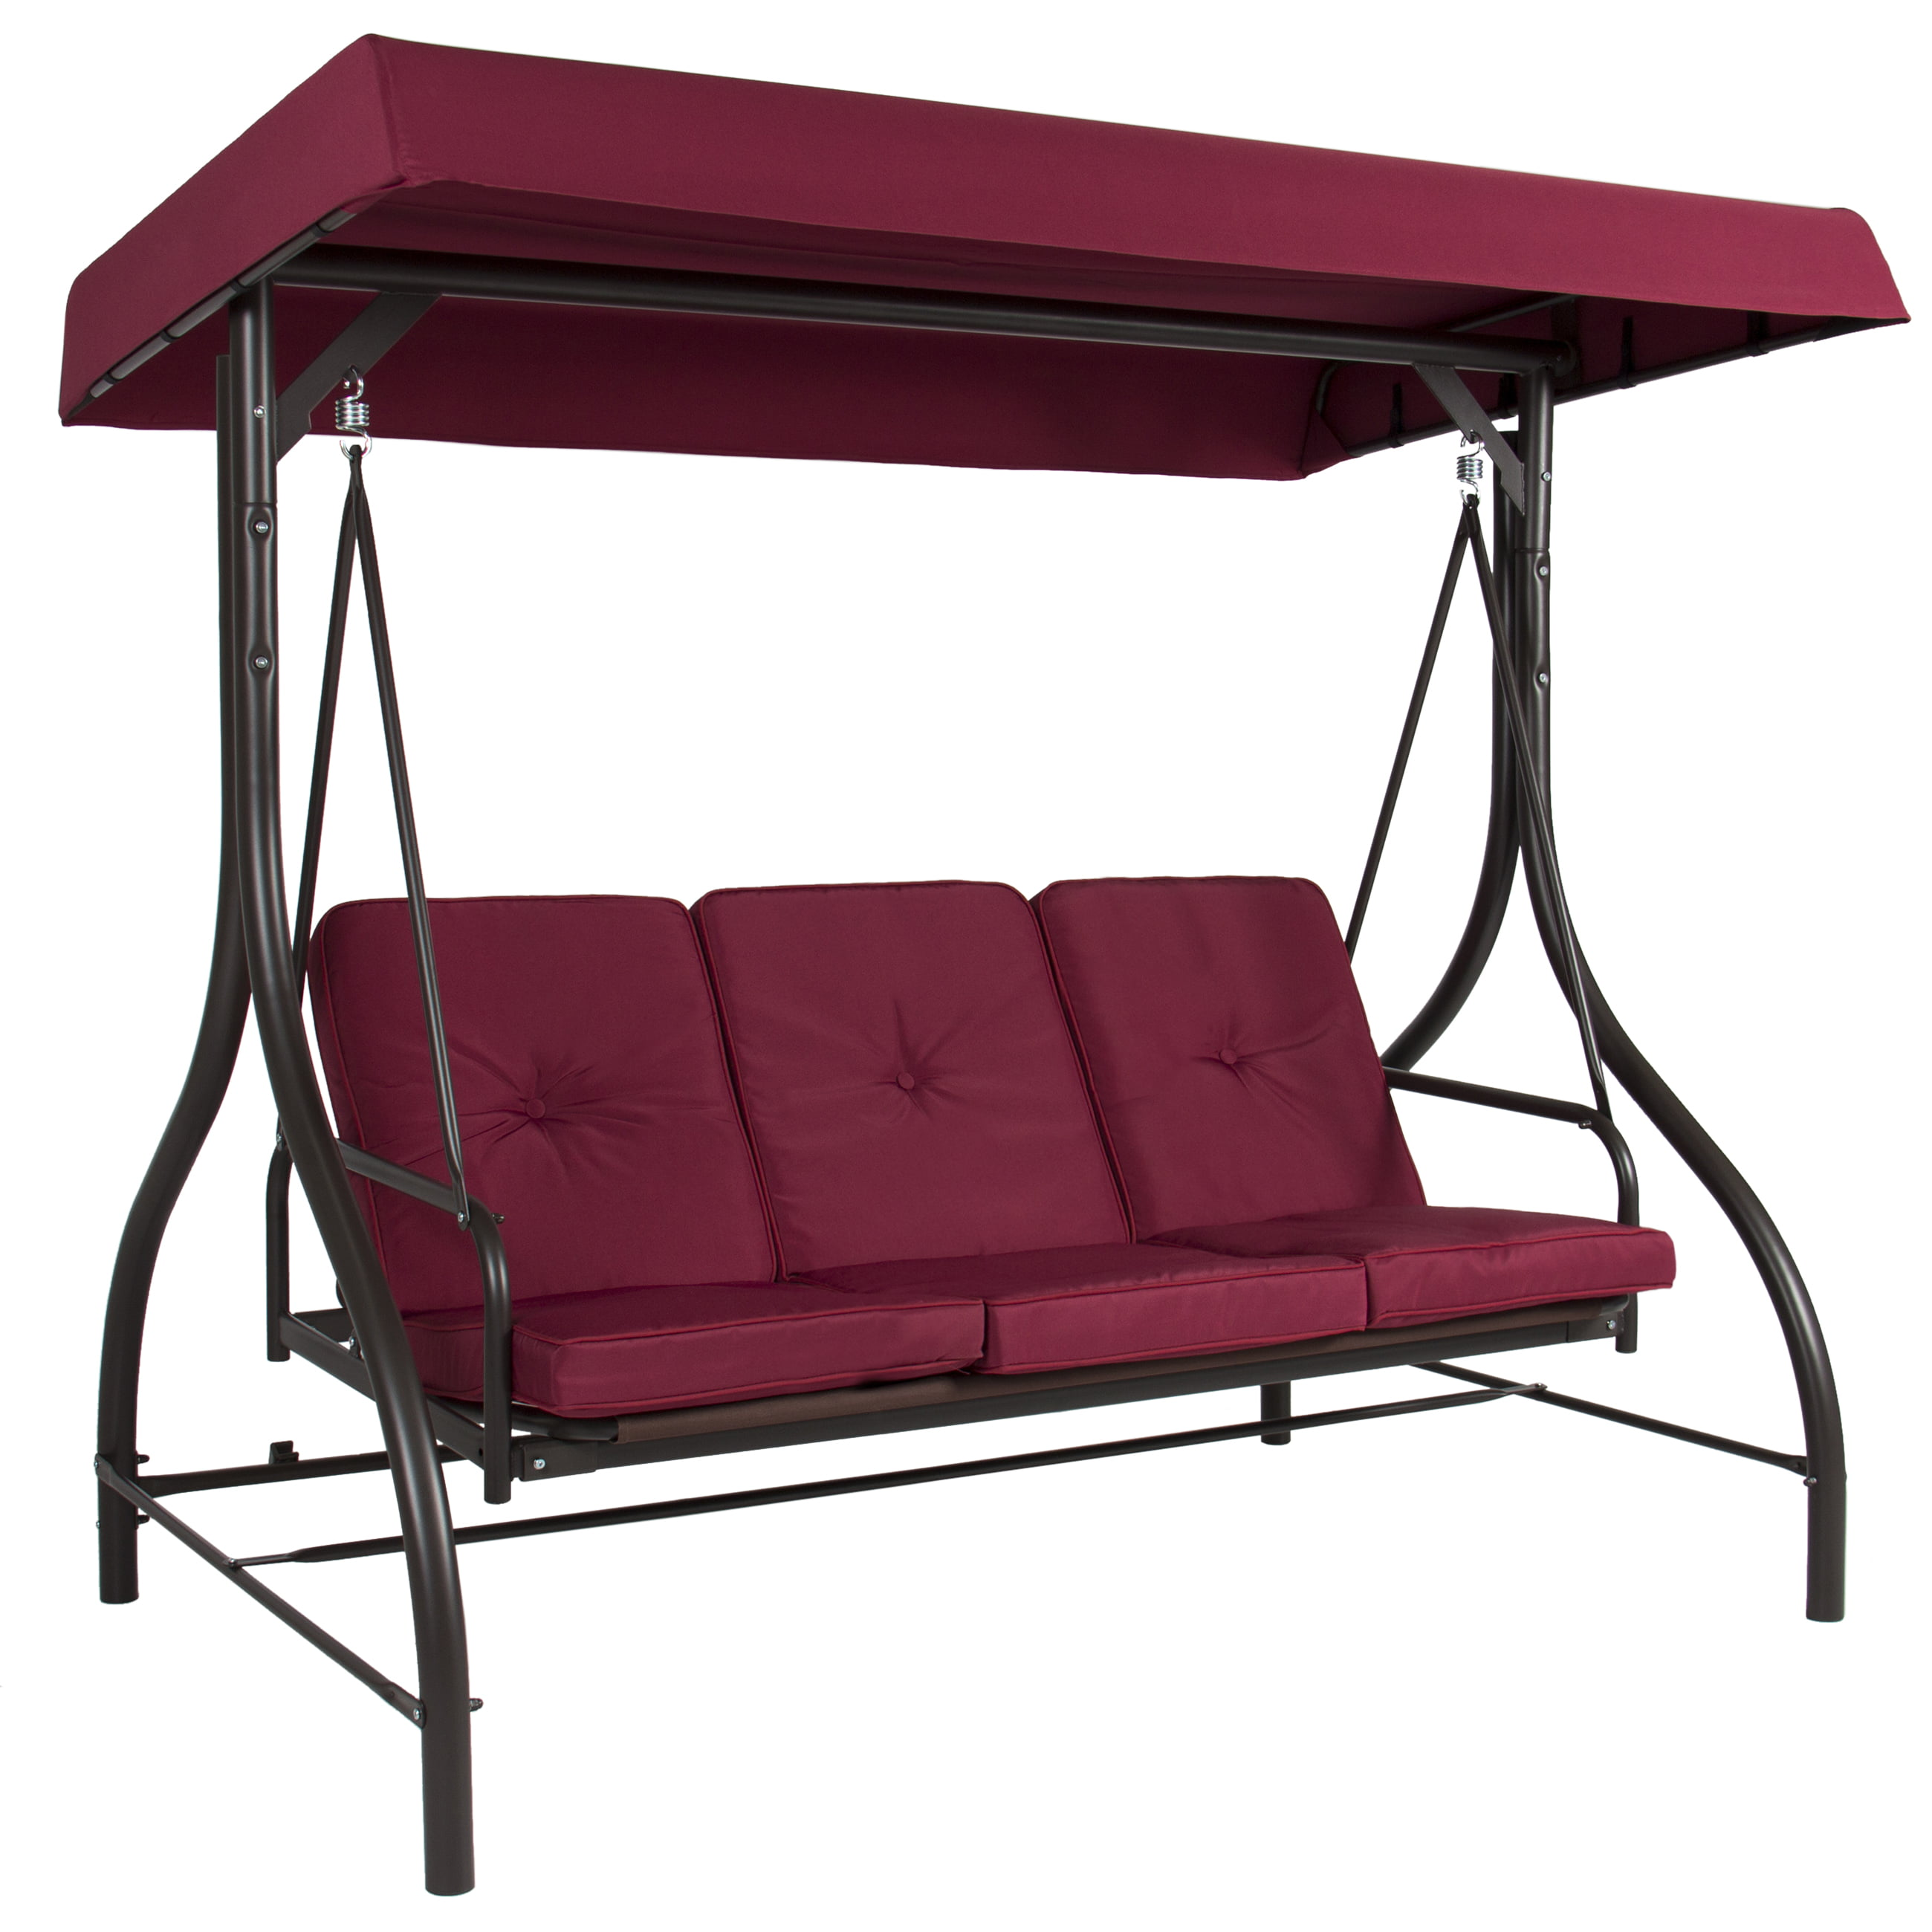 Best Choice Products Converting Outdoor Swing Canopy Hammock Seats 3 Patio Deck Furniture Burgundy - Walmart.com  sc 1 st  Walmart & Best Choice Products Converting Outdoor Swing Canopy Hammock Seats ...